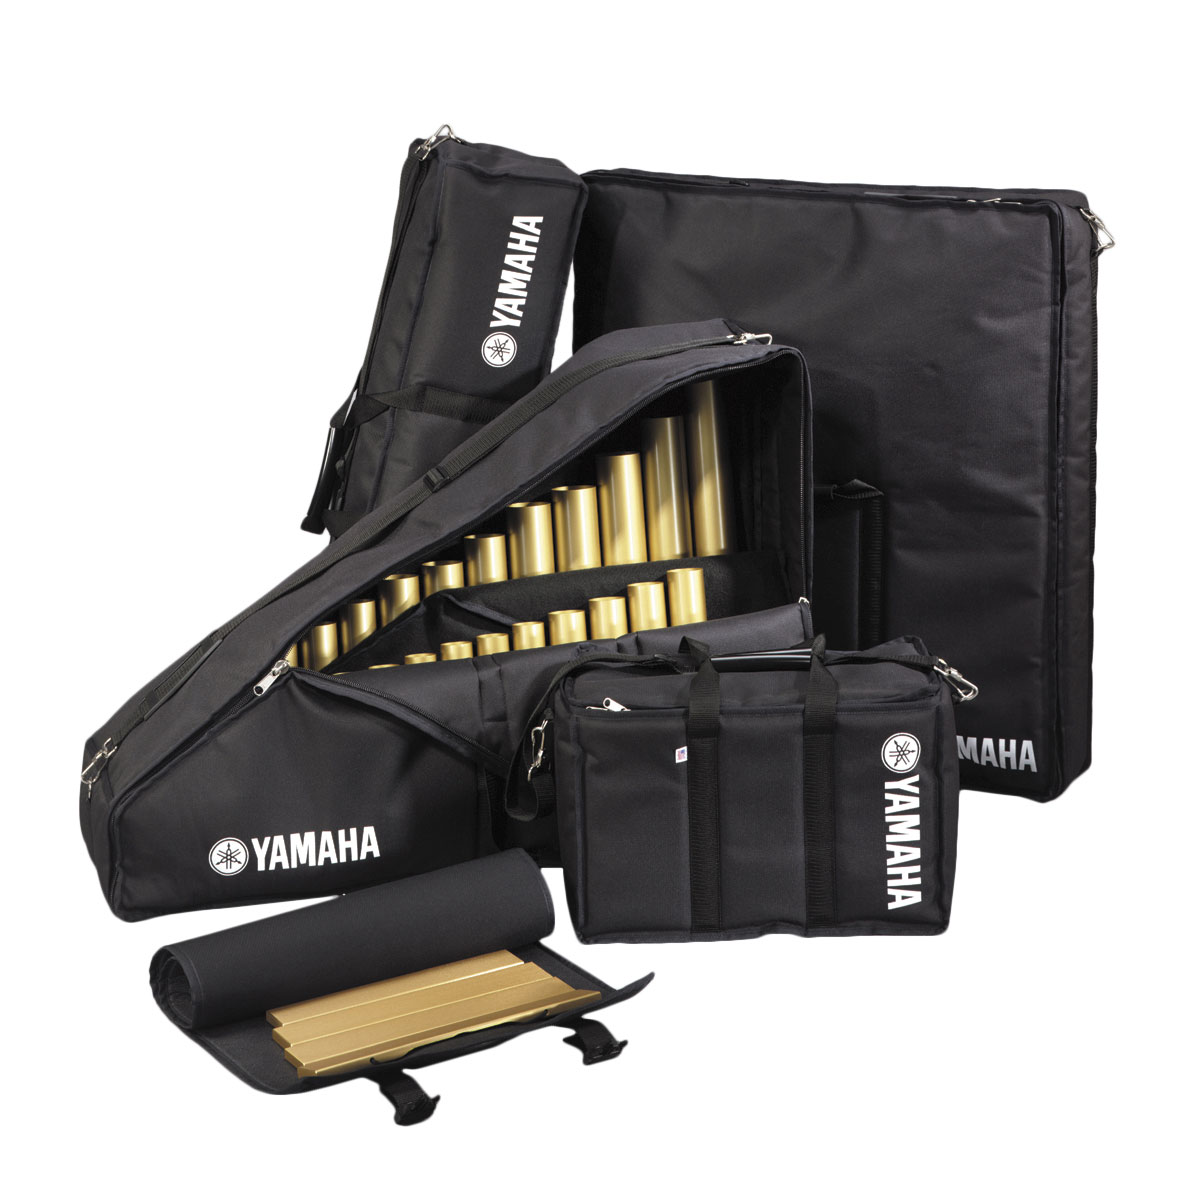 Yamaha Soft Cases for YM-6100 Marimba